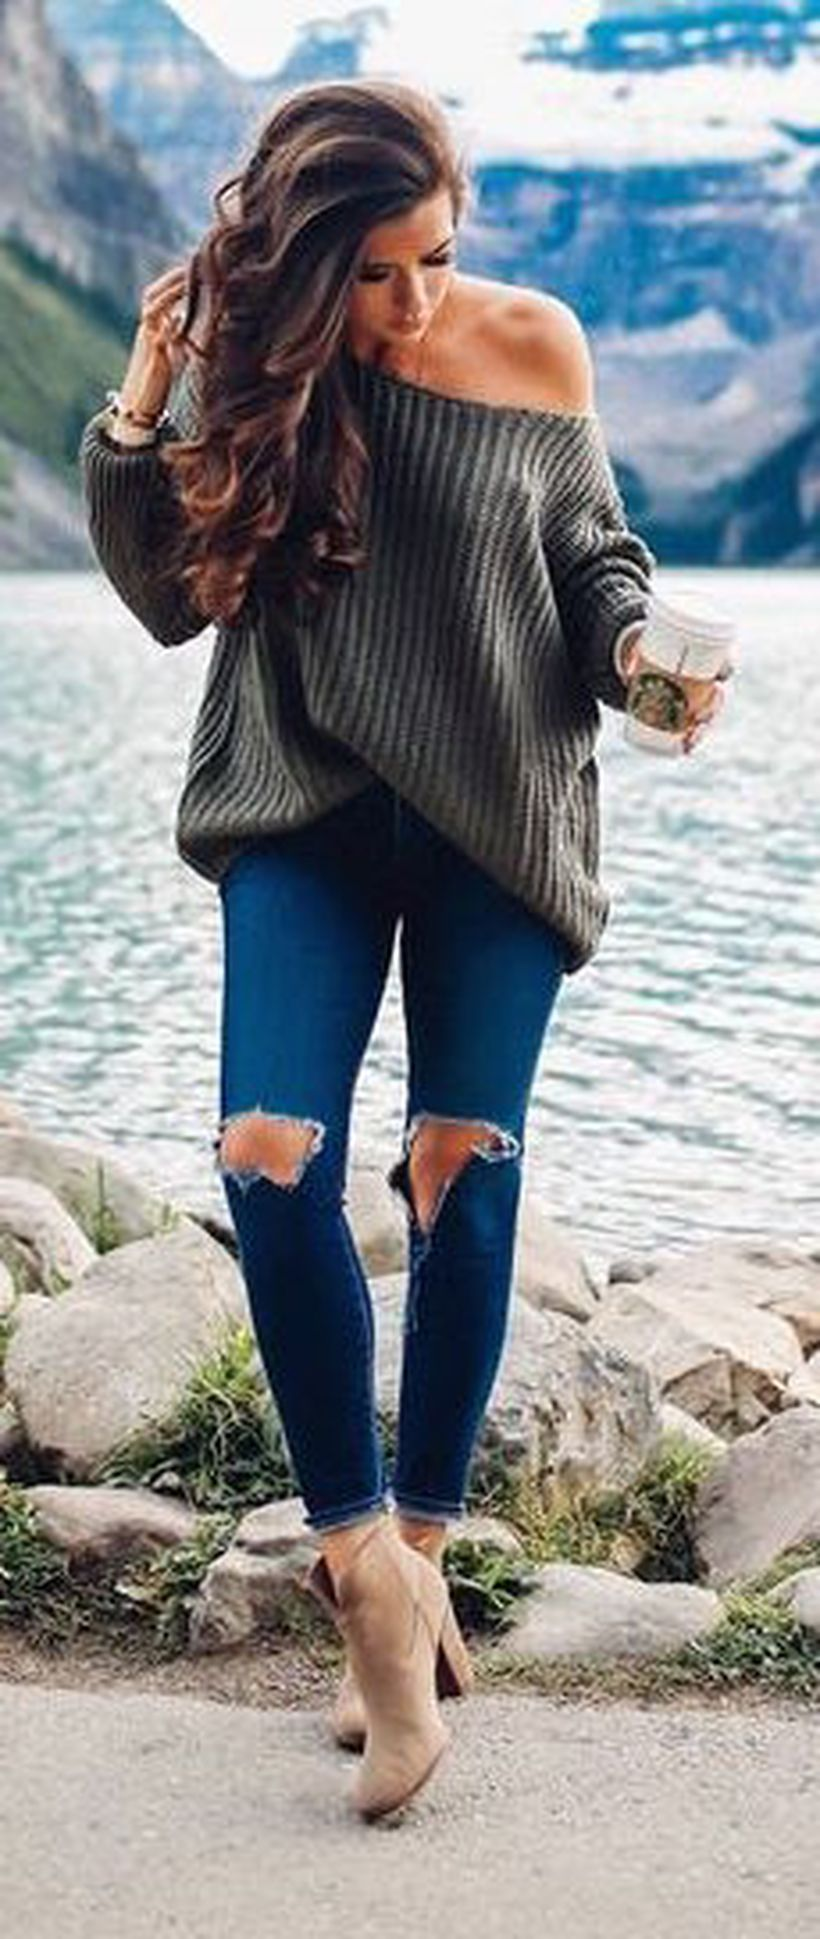 Casual fall fashions trend inspirations 2017 26 - Fashion Best